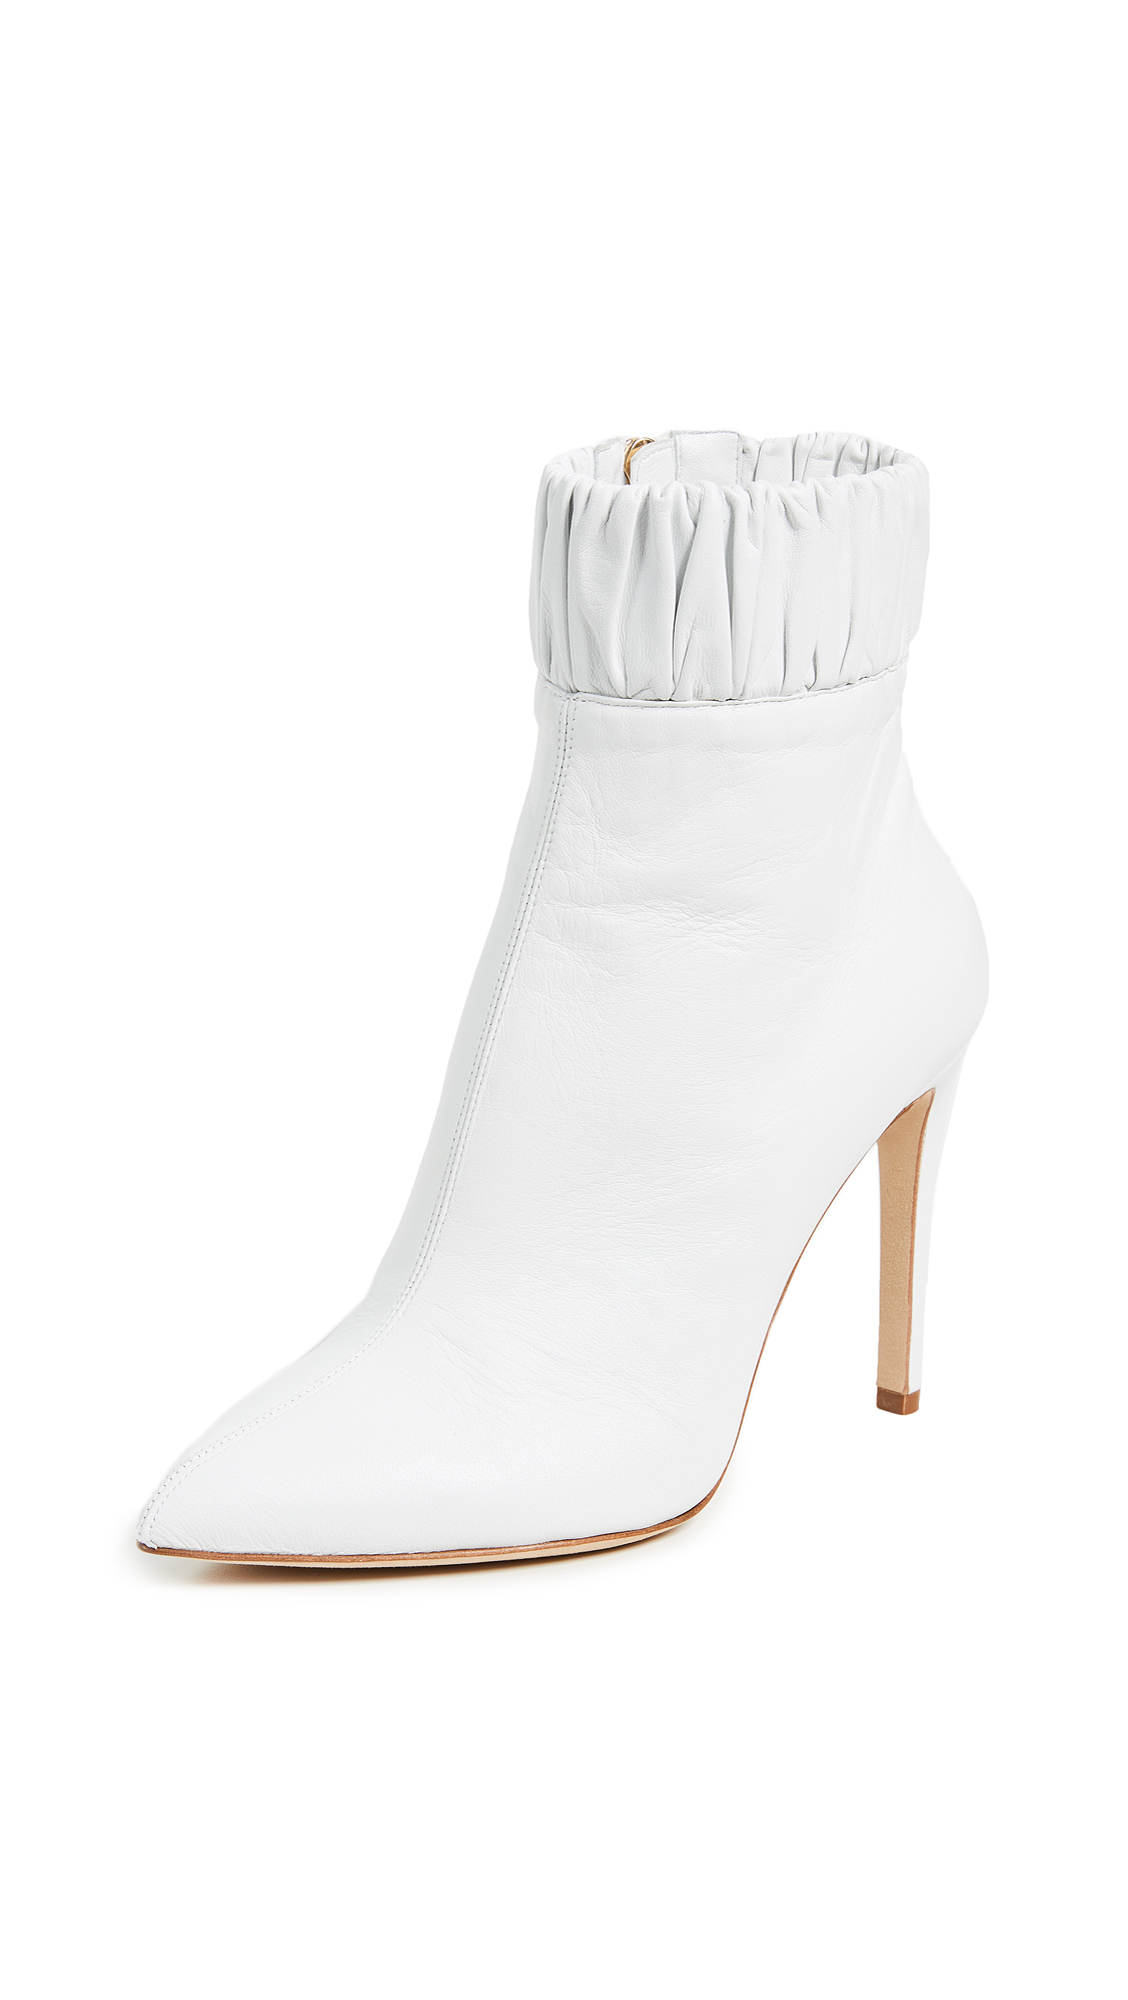 Chloe Gosselin Maud Booties - White